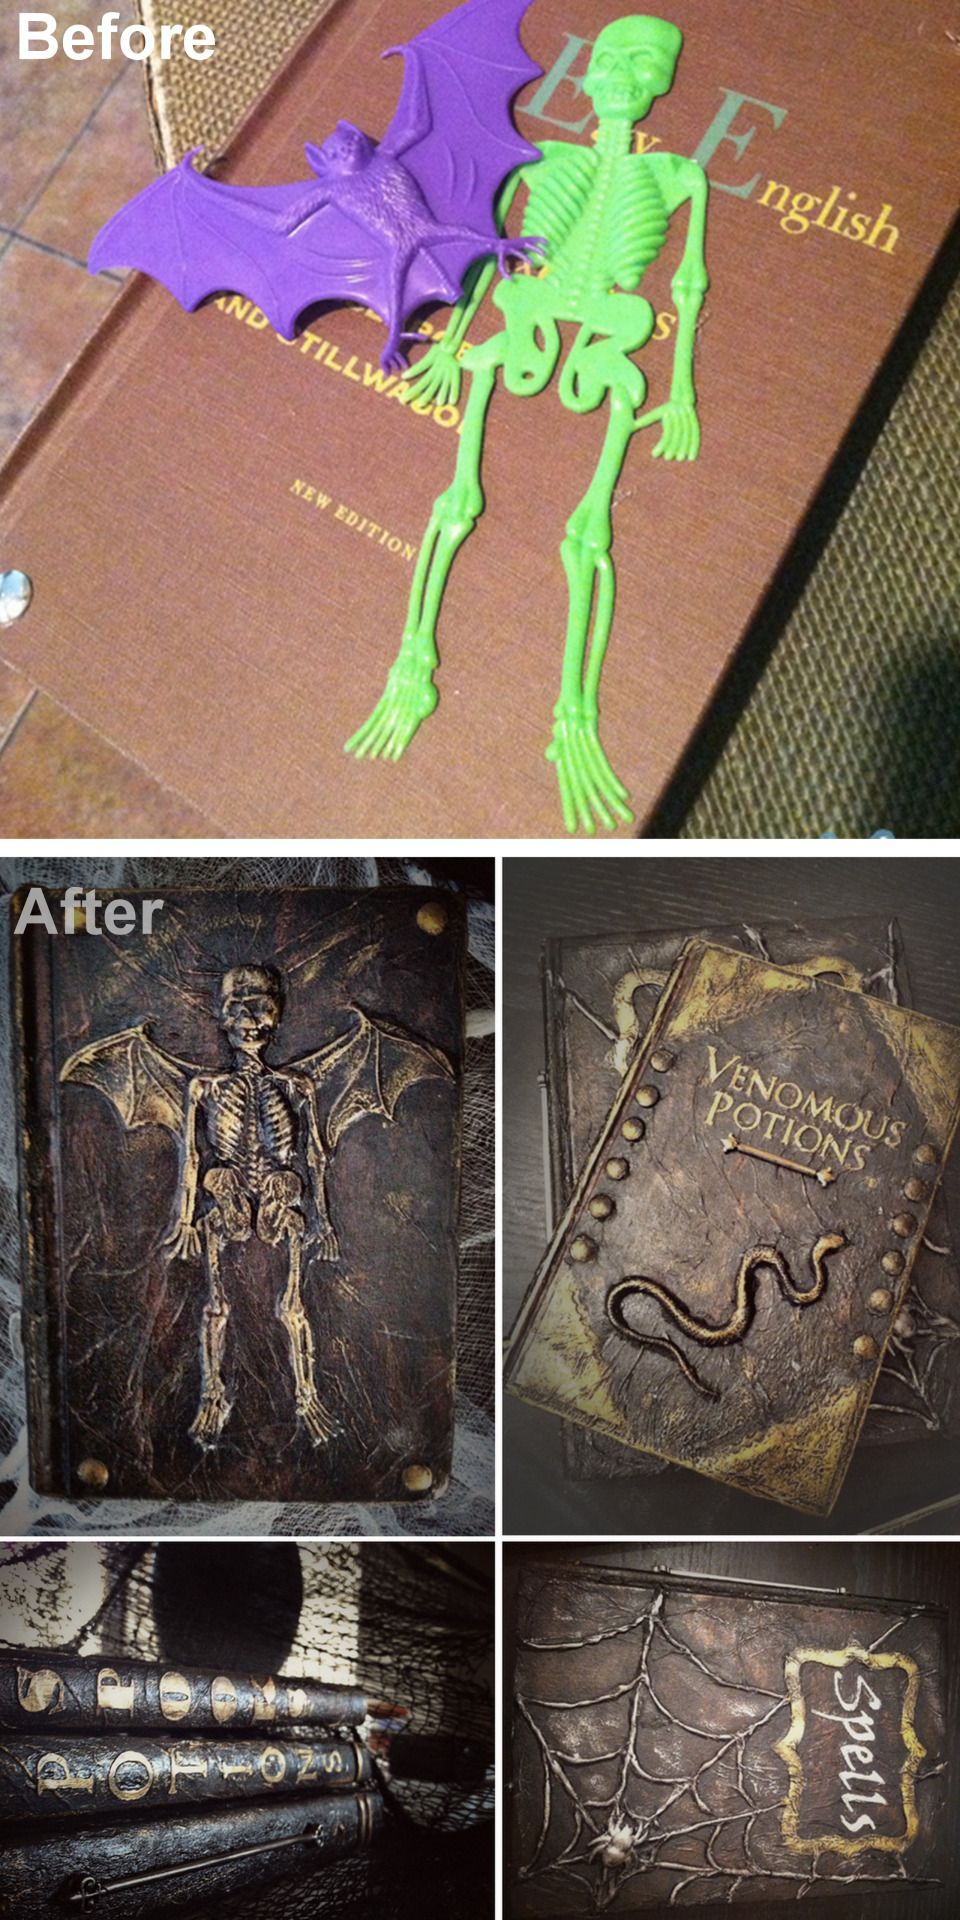 Spell Designs Diy Outdoor Bath: DIY Spell And Potion Book Tutorial From Better After. This